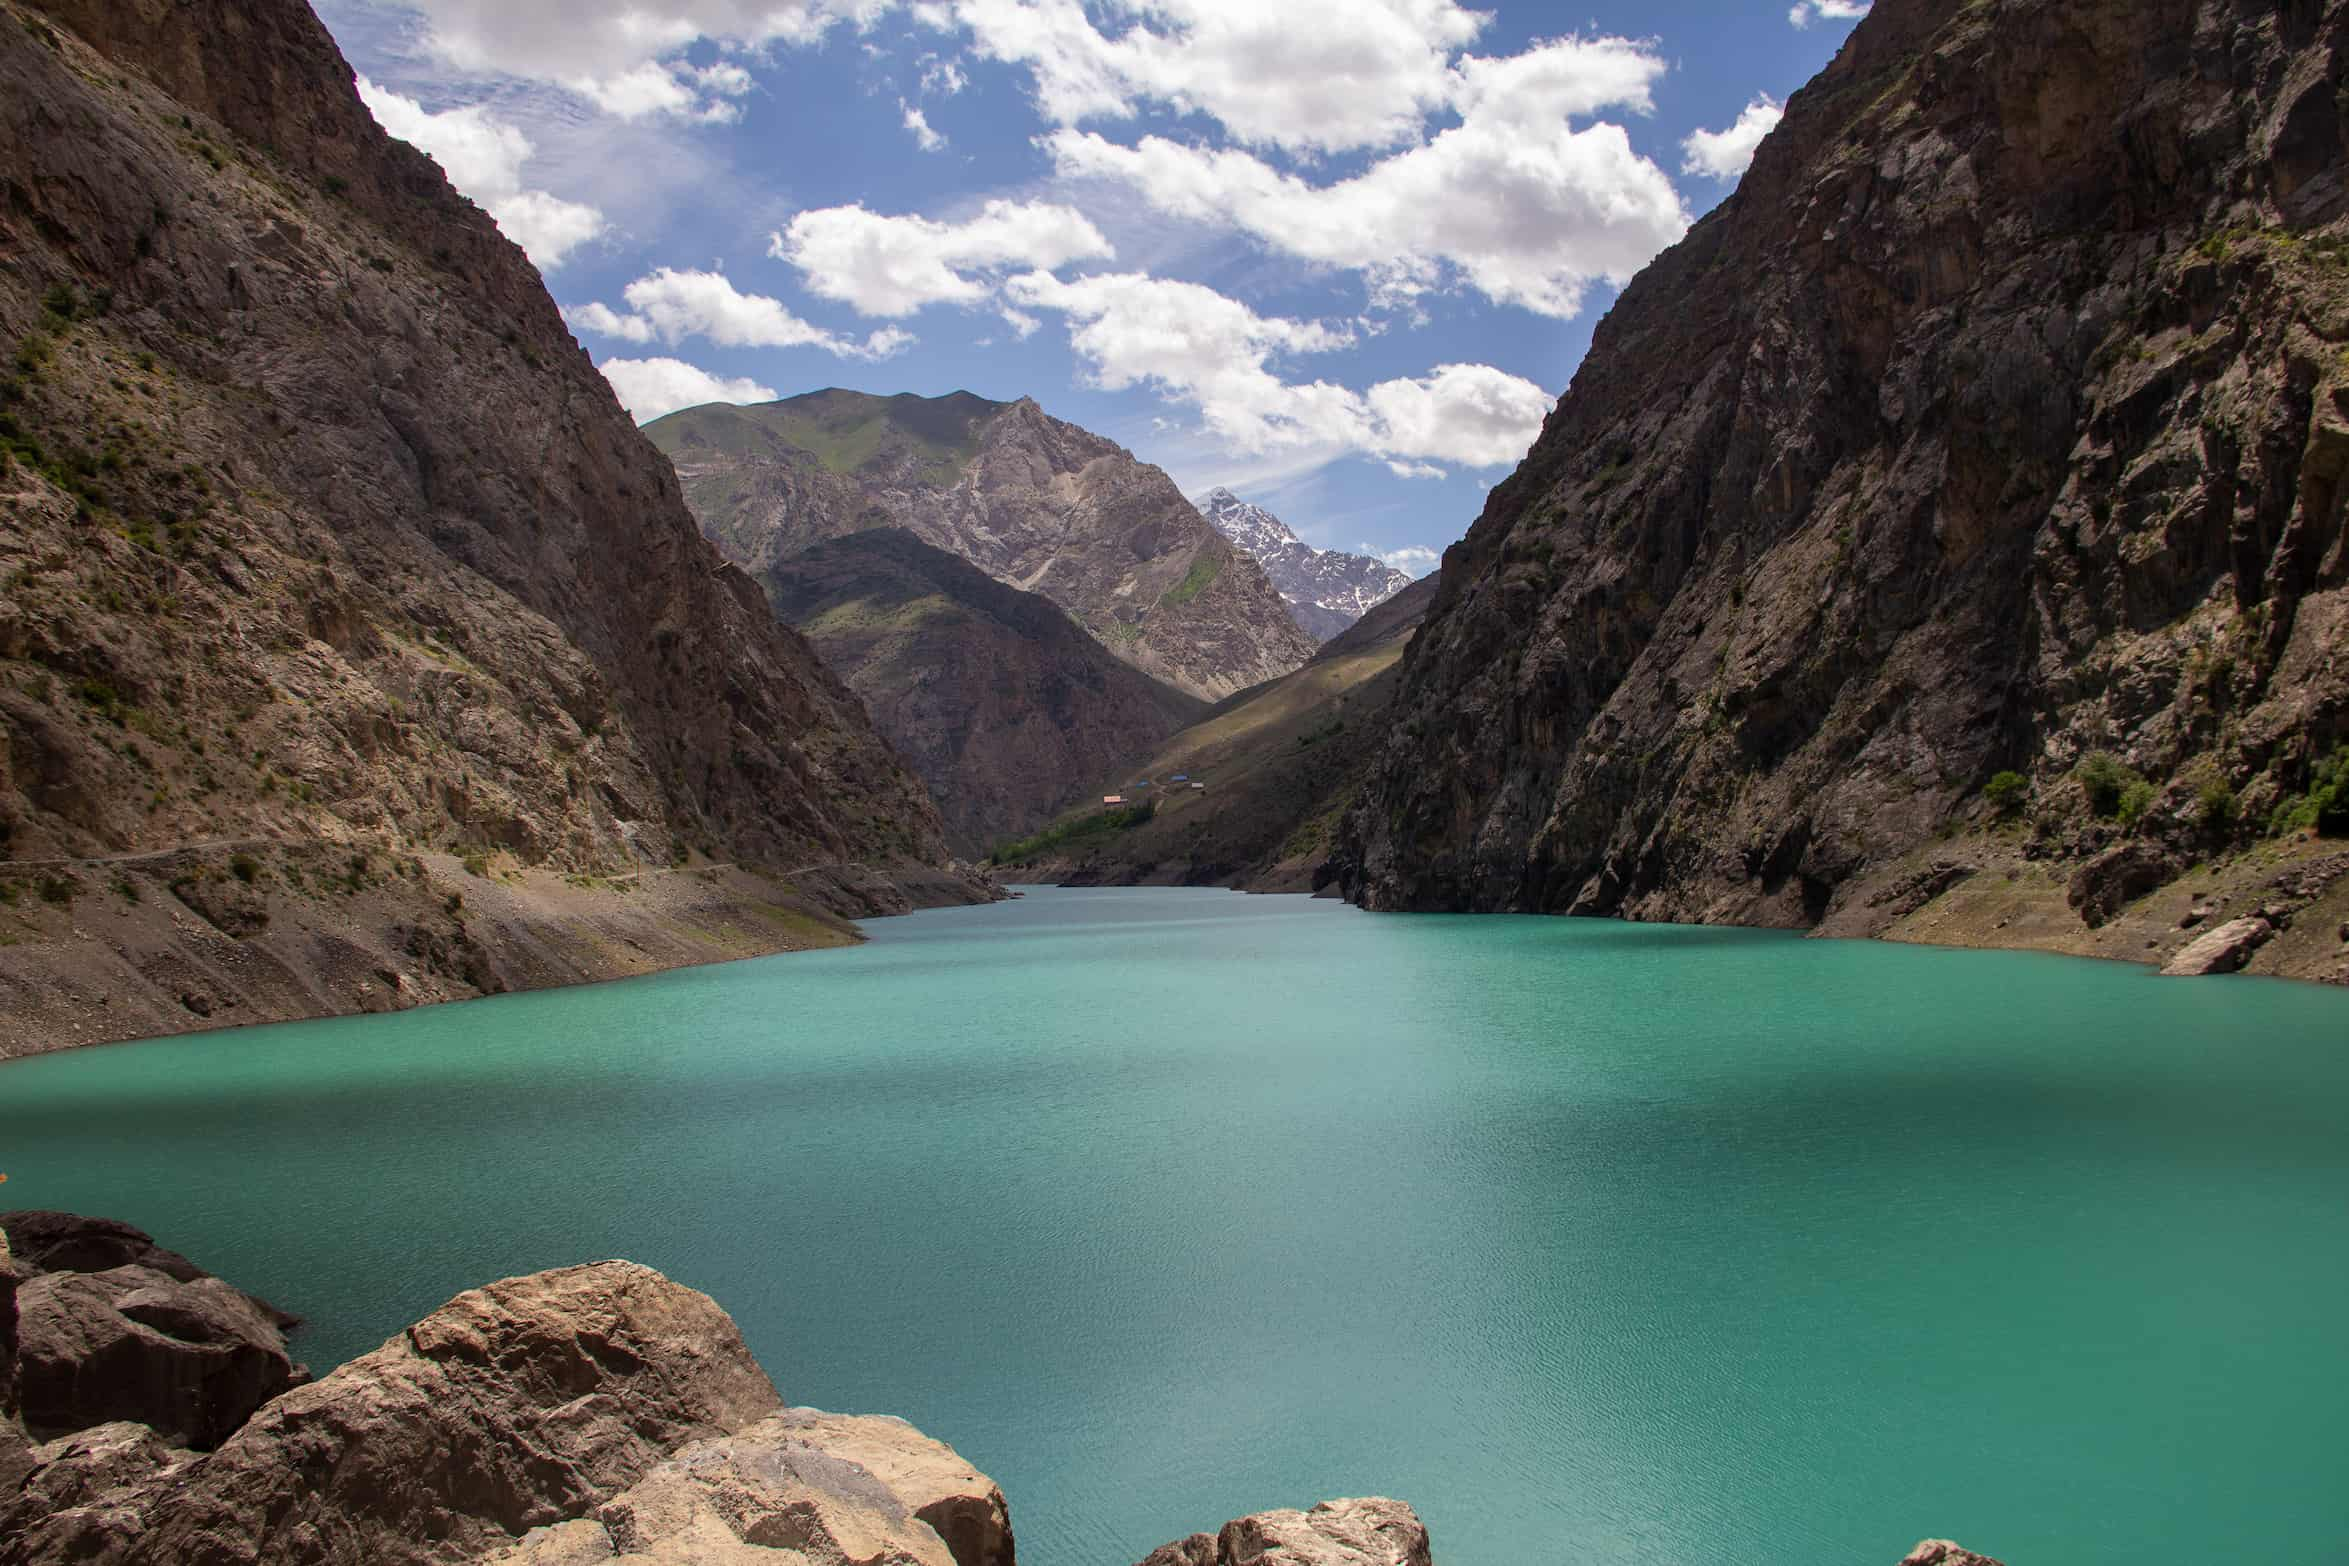 TAJIKISTAN: TOP FIVE DAY TRIPS THAT WILL BE WORTH YOUR WHILE